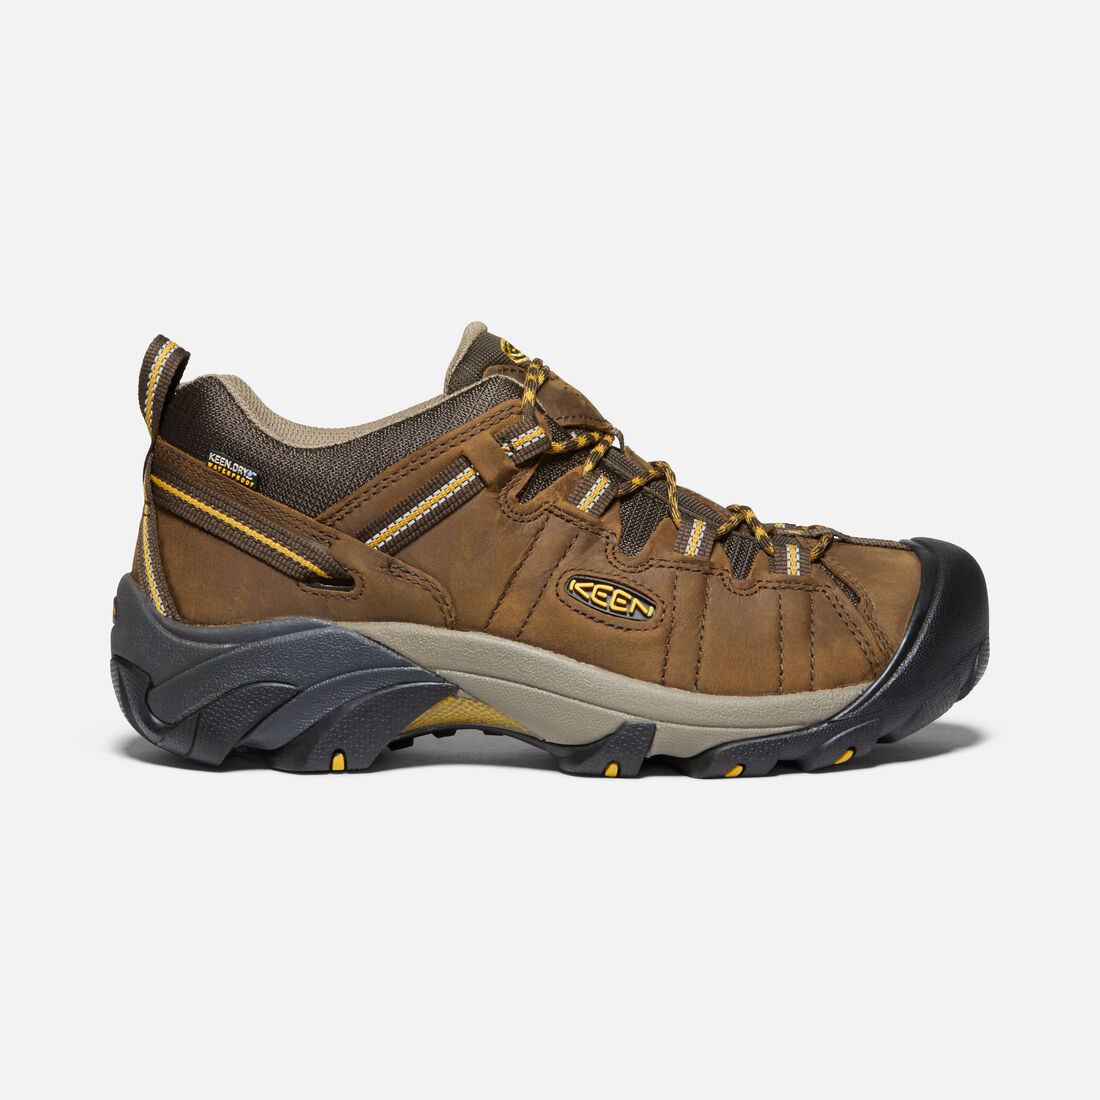 Men's Targhee II Wide in Cascade Brown/Golden Yellow - large view.